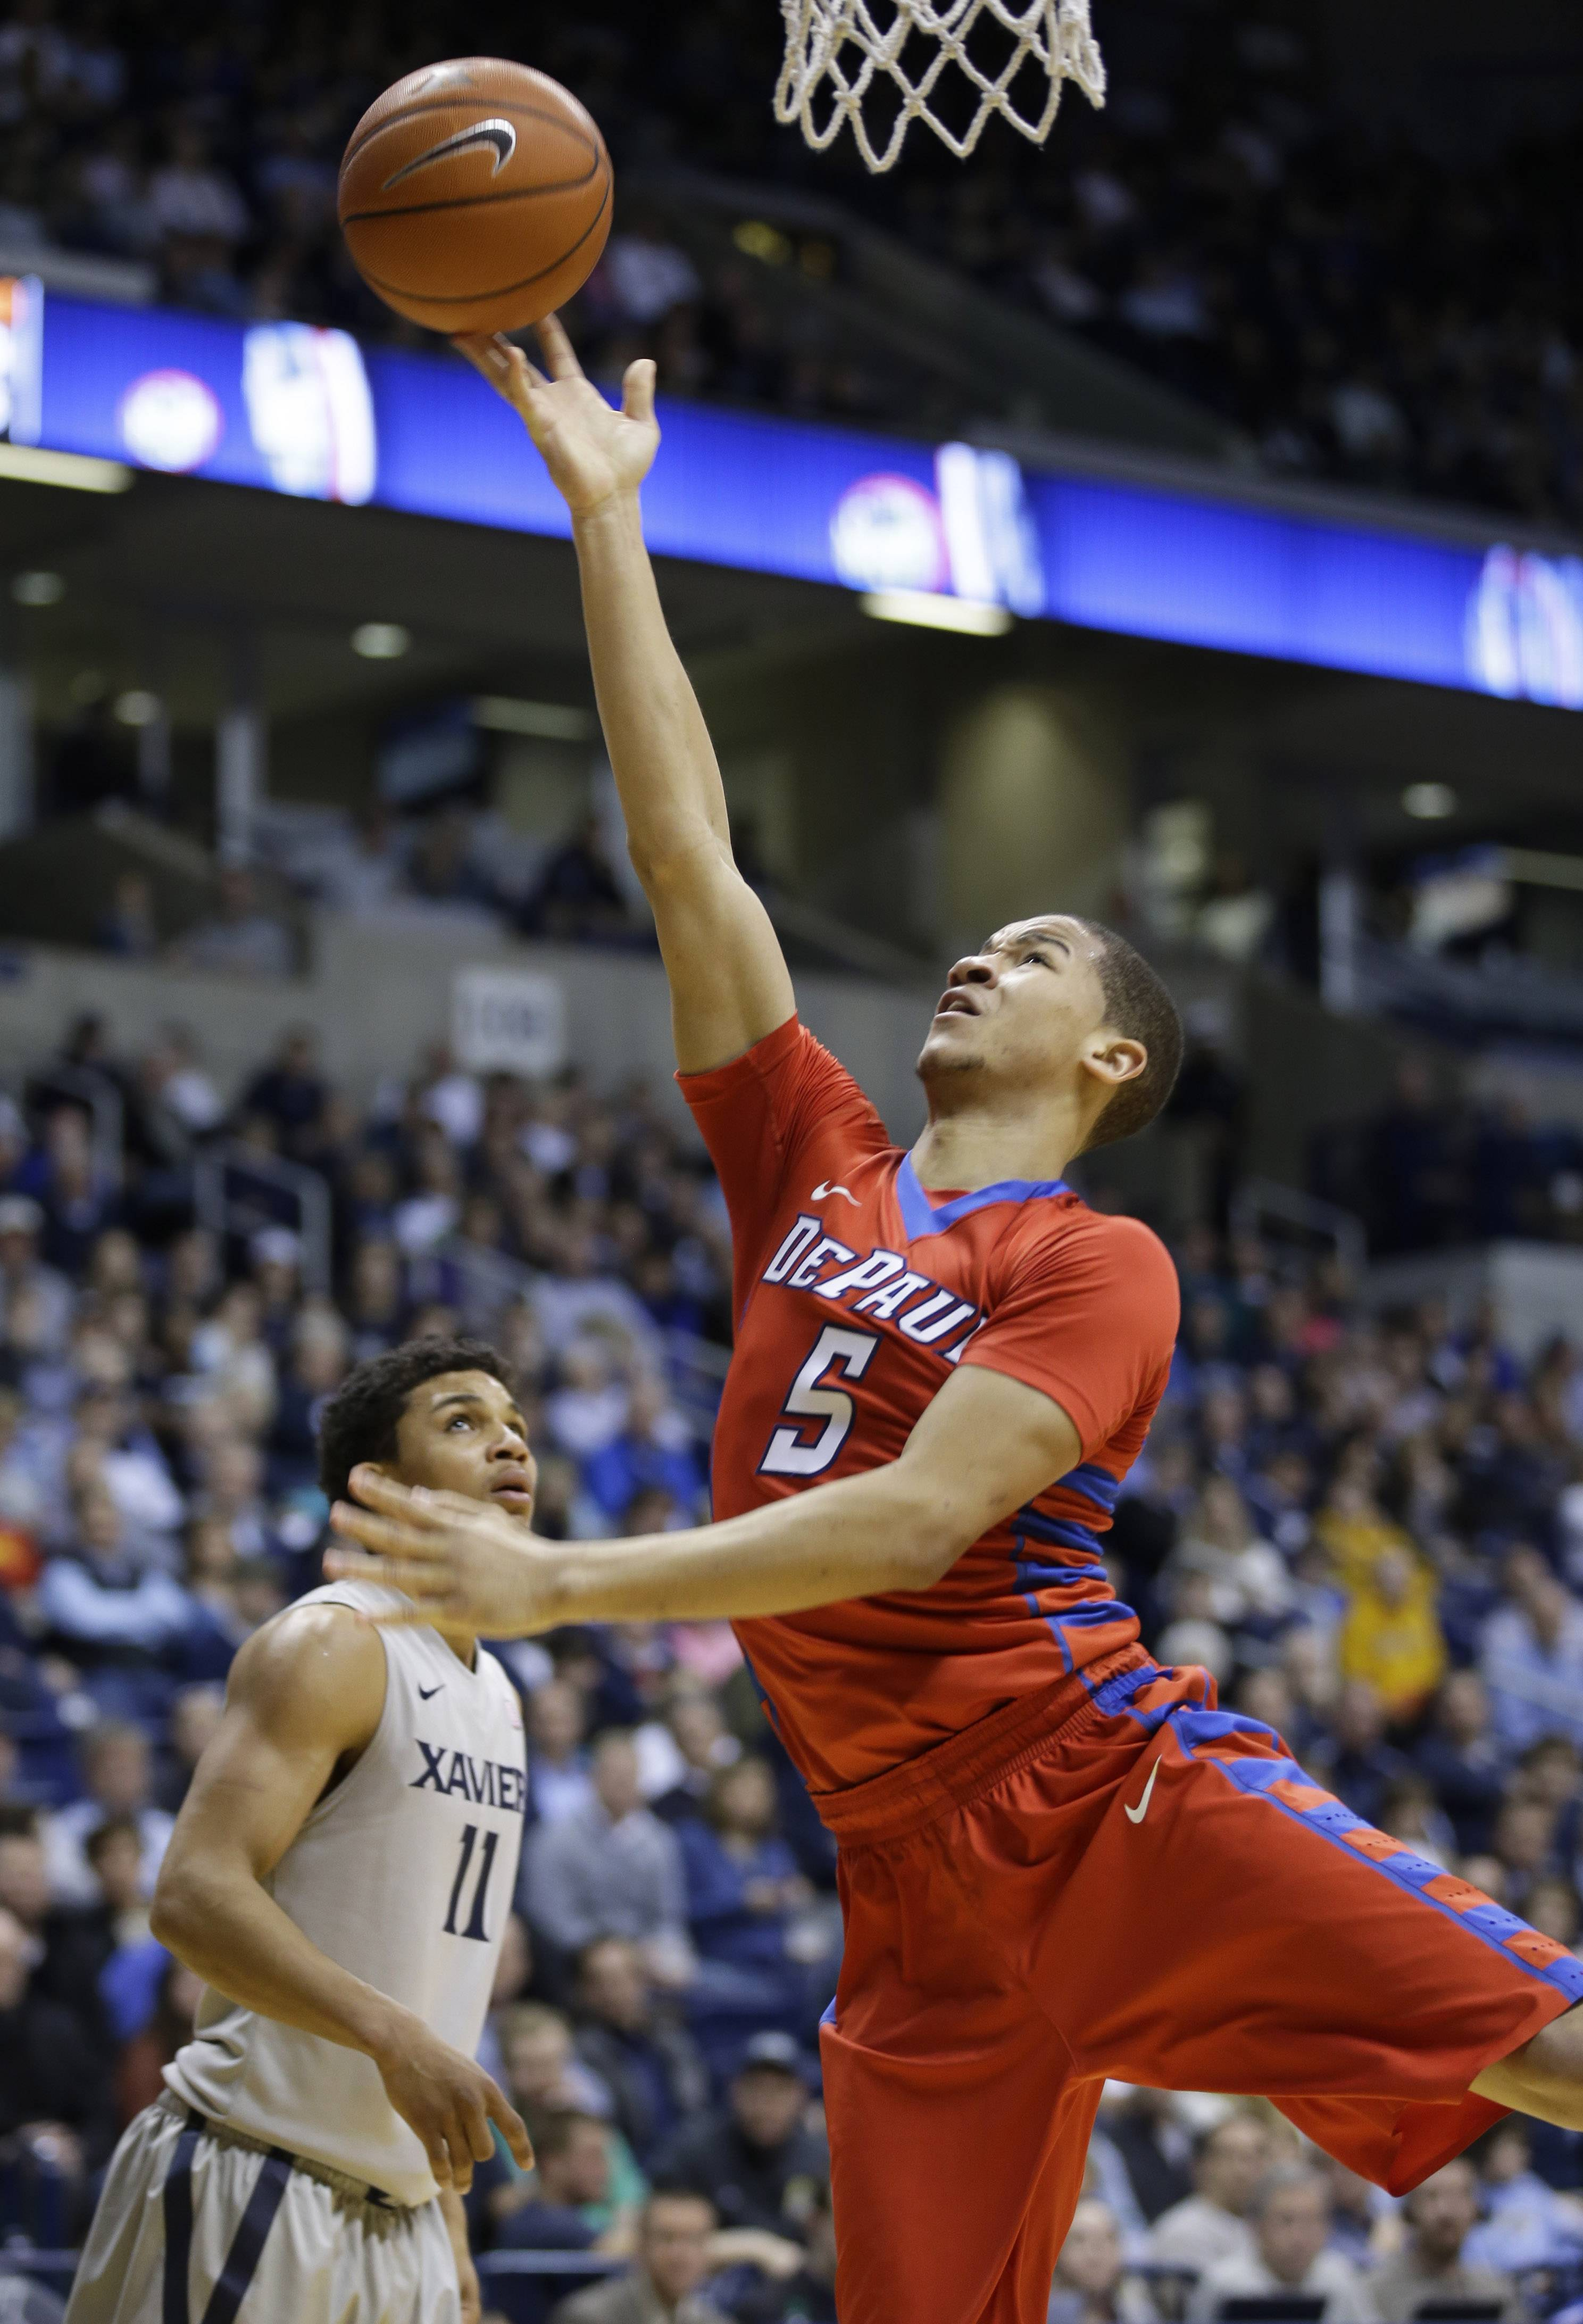 DePaul guard Billy Garrett Jr. (5) shoots against Xavier guard Dee Davis (11) in the second half of an NCAA college basketball game, Wednesday, Feb. 19, 2014, in Cincinnati. Xavier won 83-64. (AP Photo/Al Behrman)